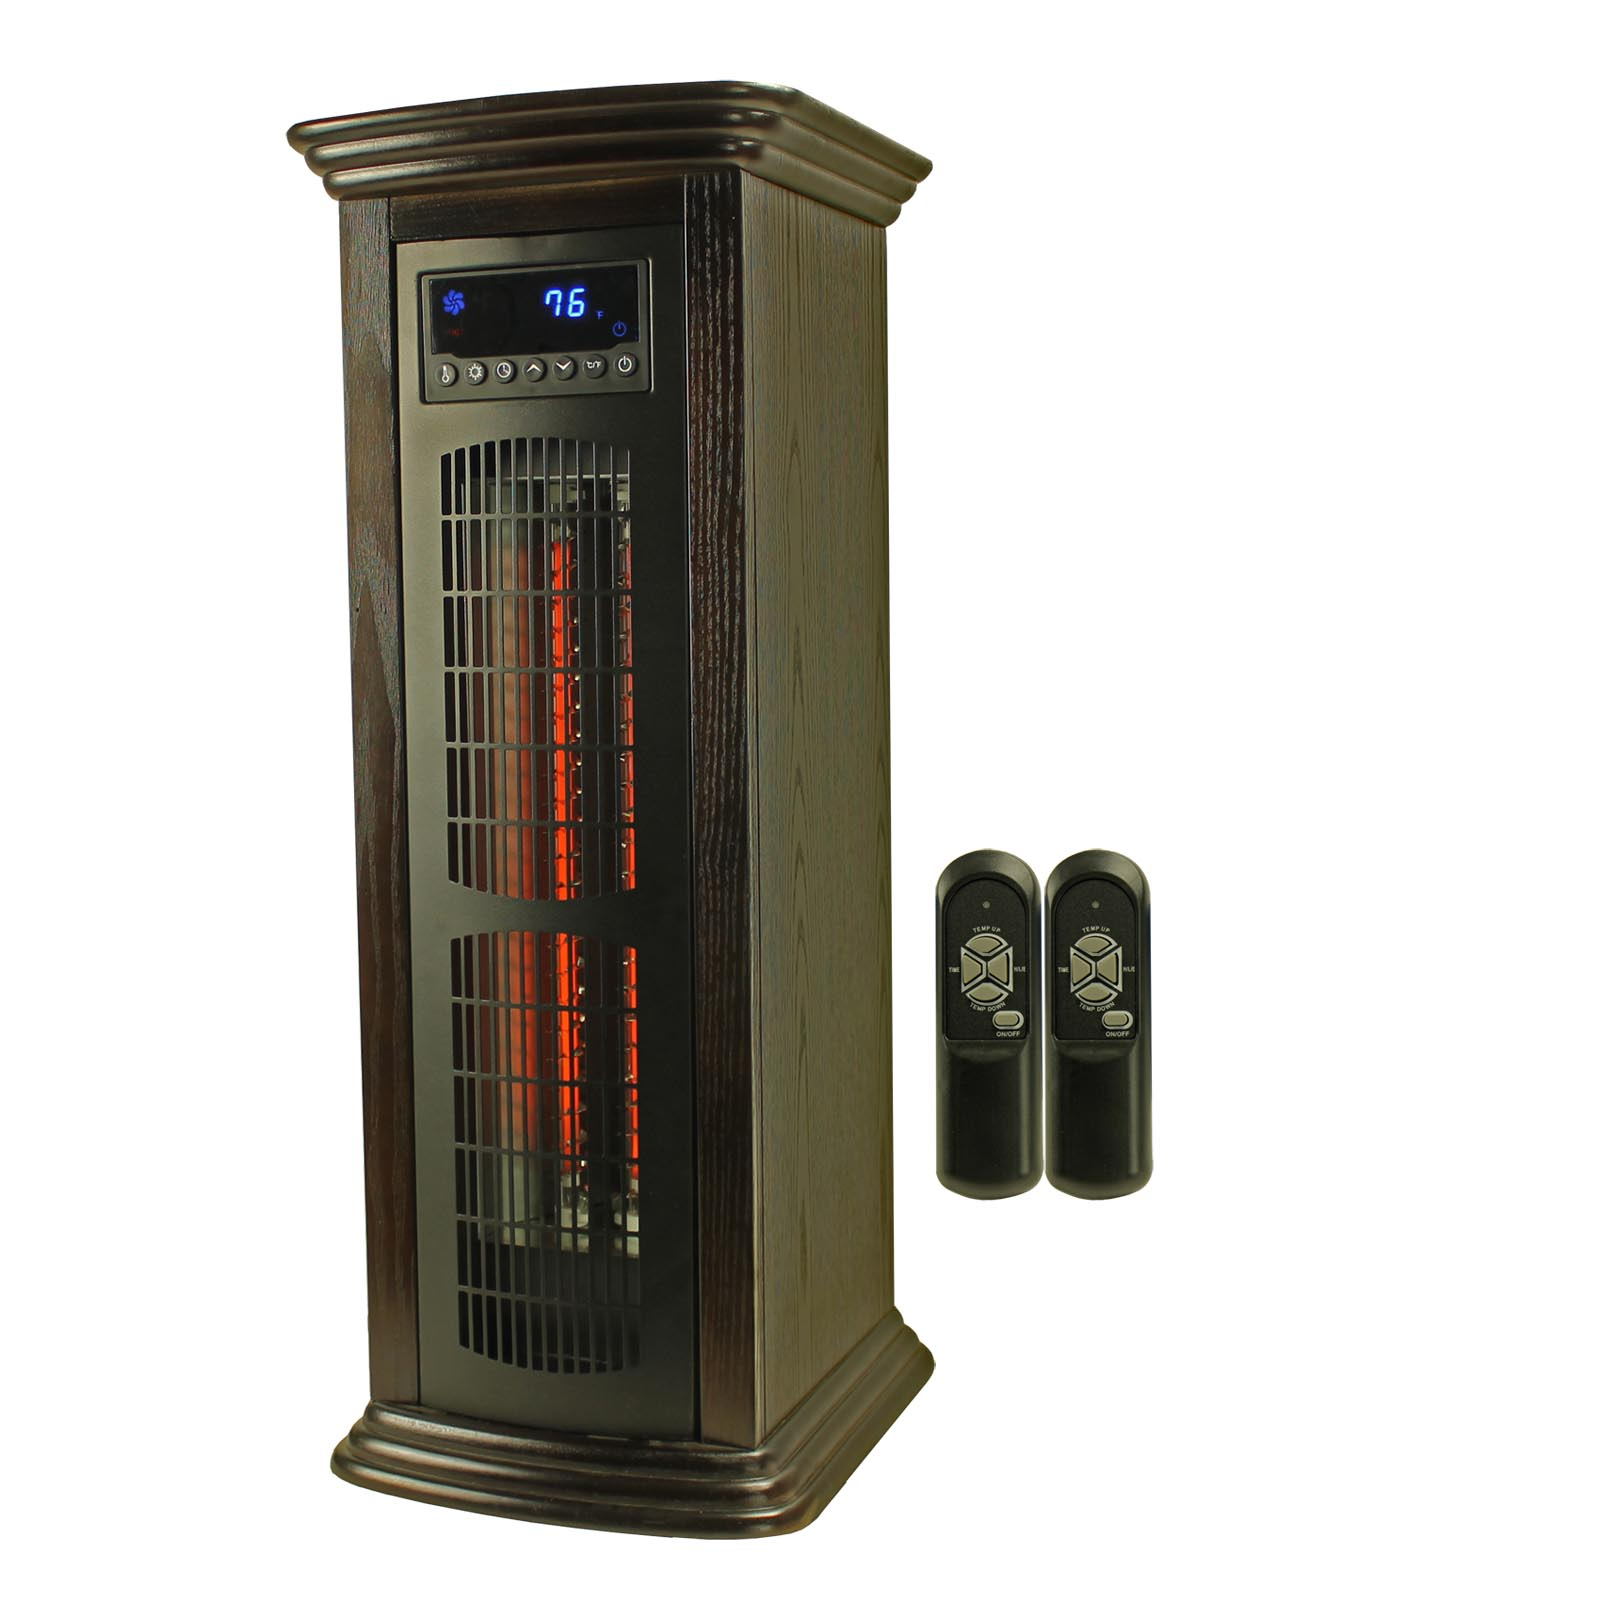 LifeSmart 1800 Sq Ft Infrared Quartz Tower Heater | LS-1003HH13